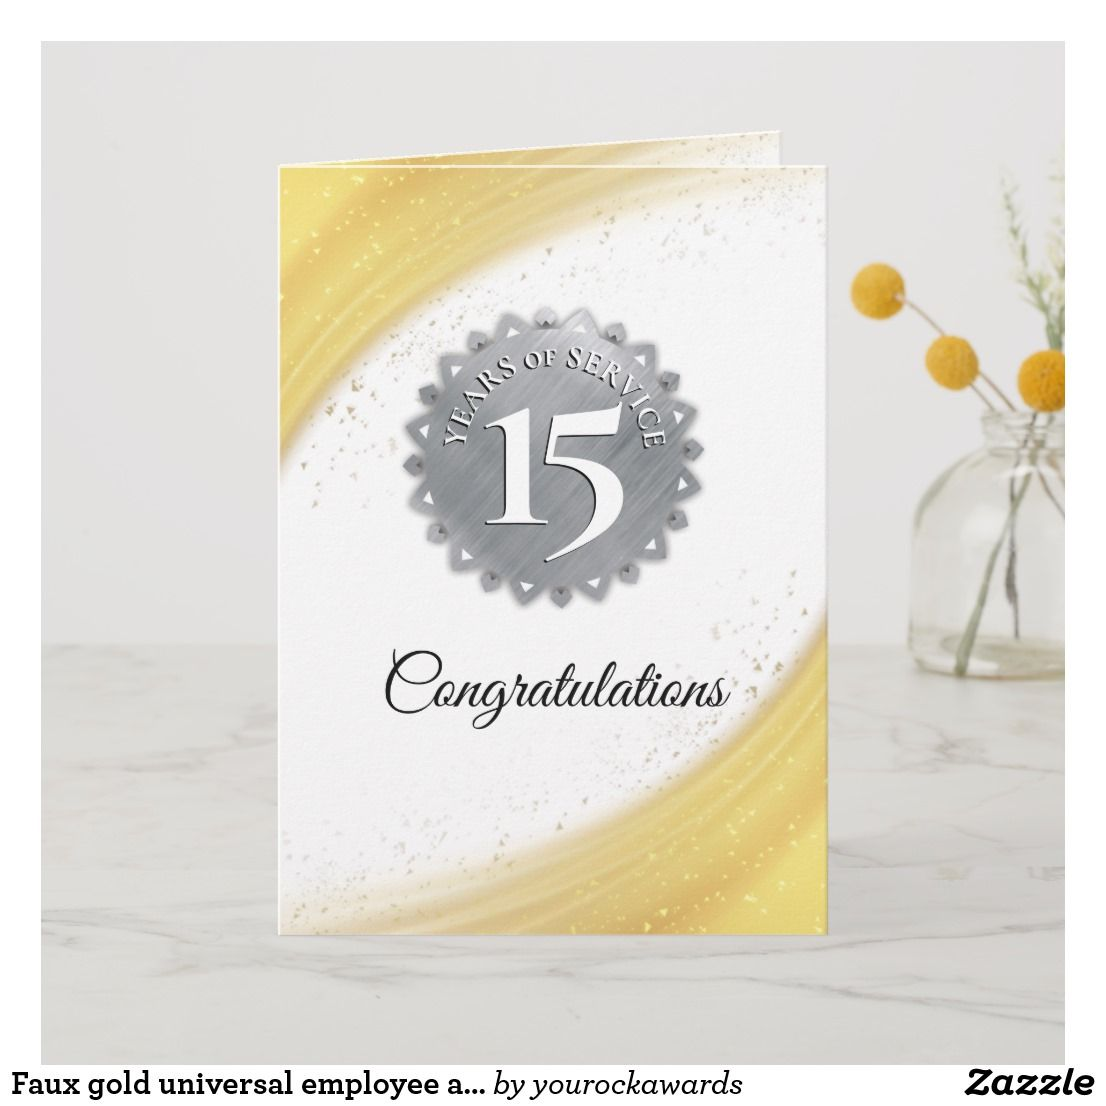 Faux gold universal employee anniversary card